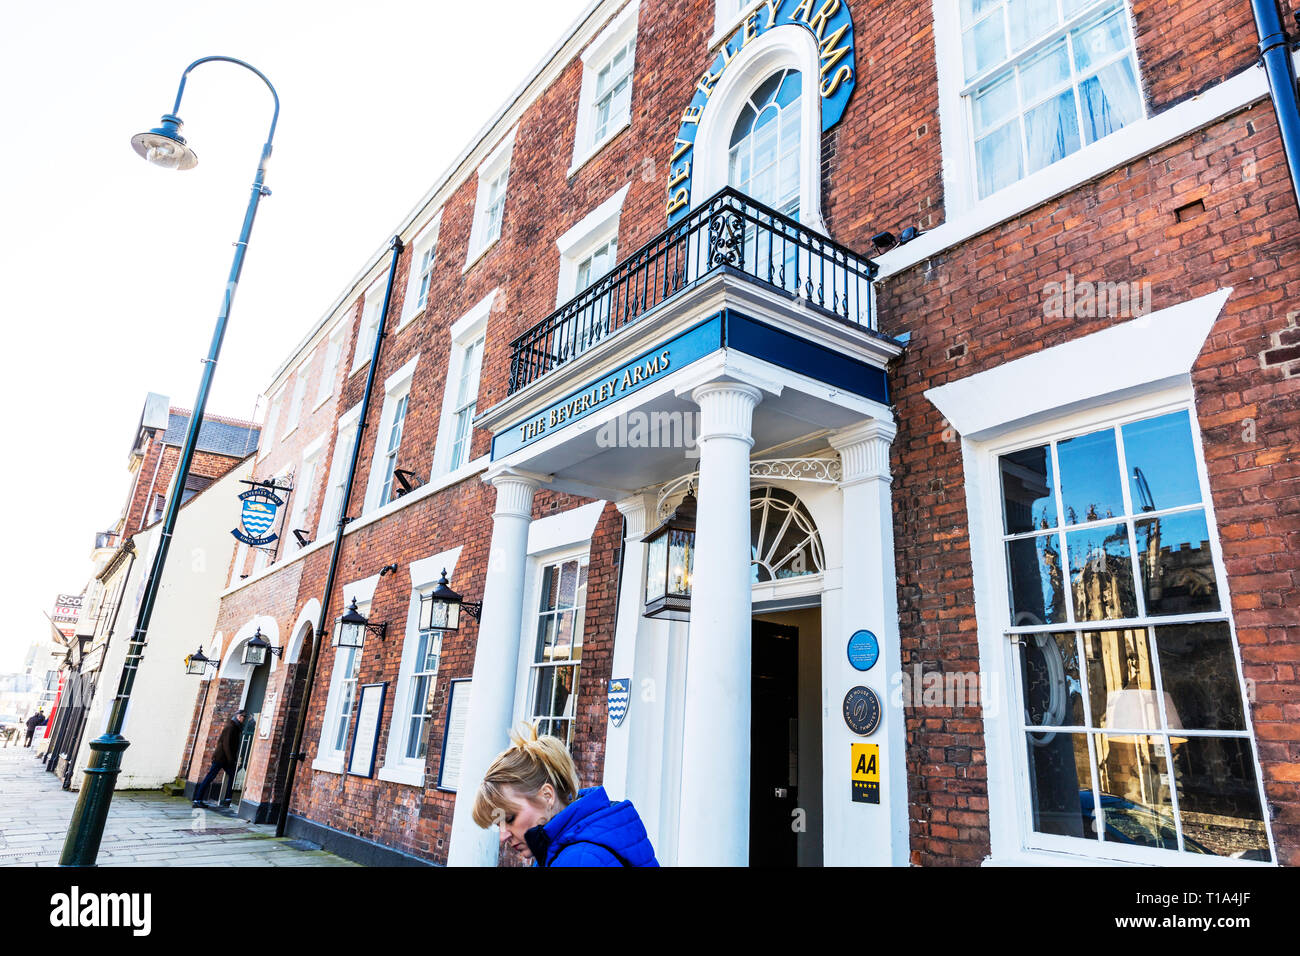 the beverley arms hotel, Beverley Town Yorkshire UK England, the beverley arms, hotel, hotels, front, sign, entrance, Beverley Arms Hotel, Beverley UK Stock Photo